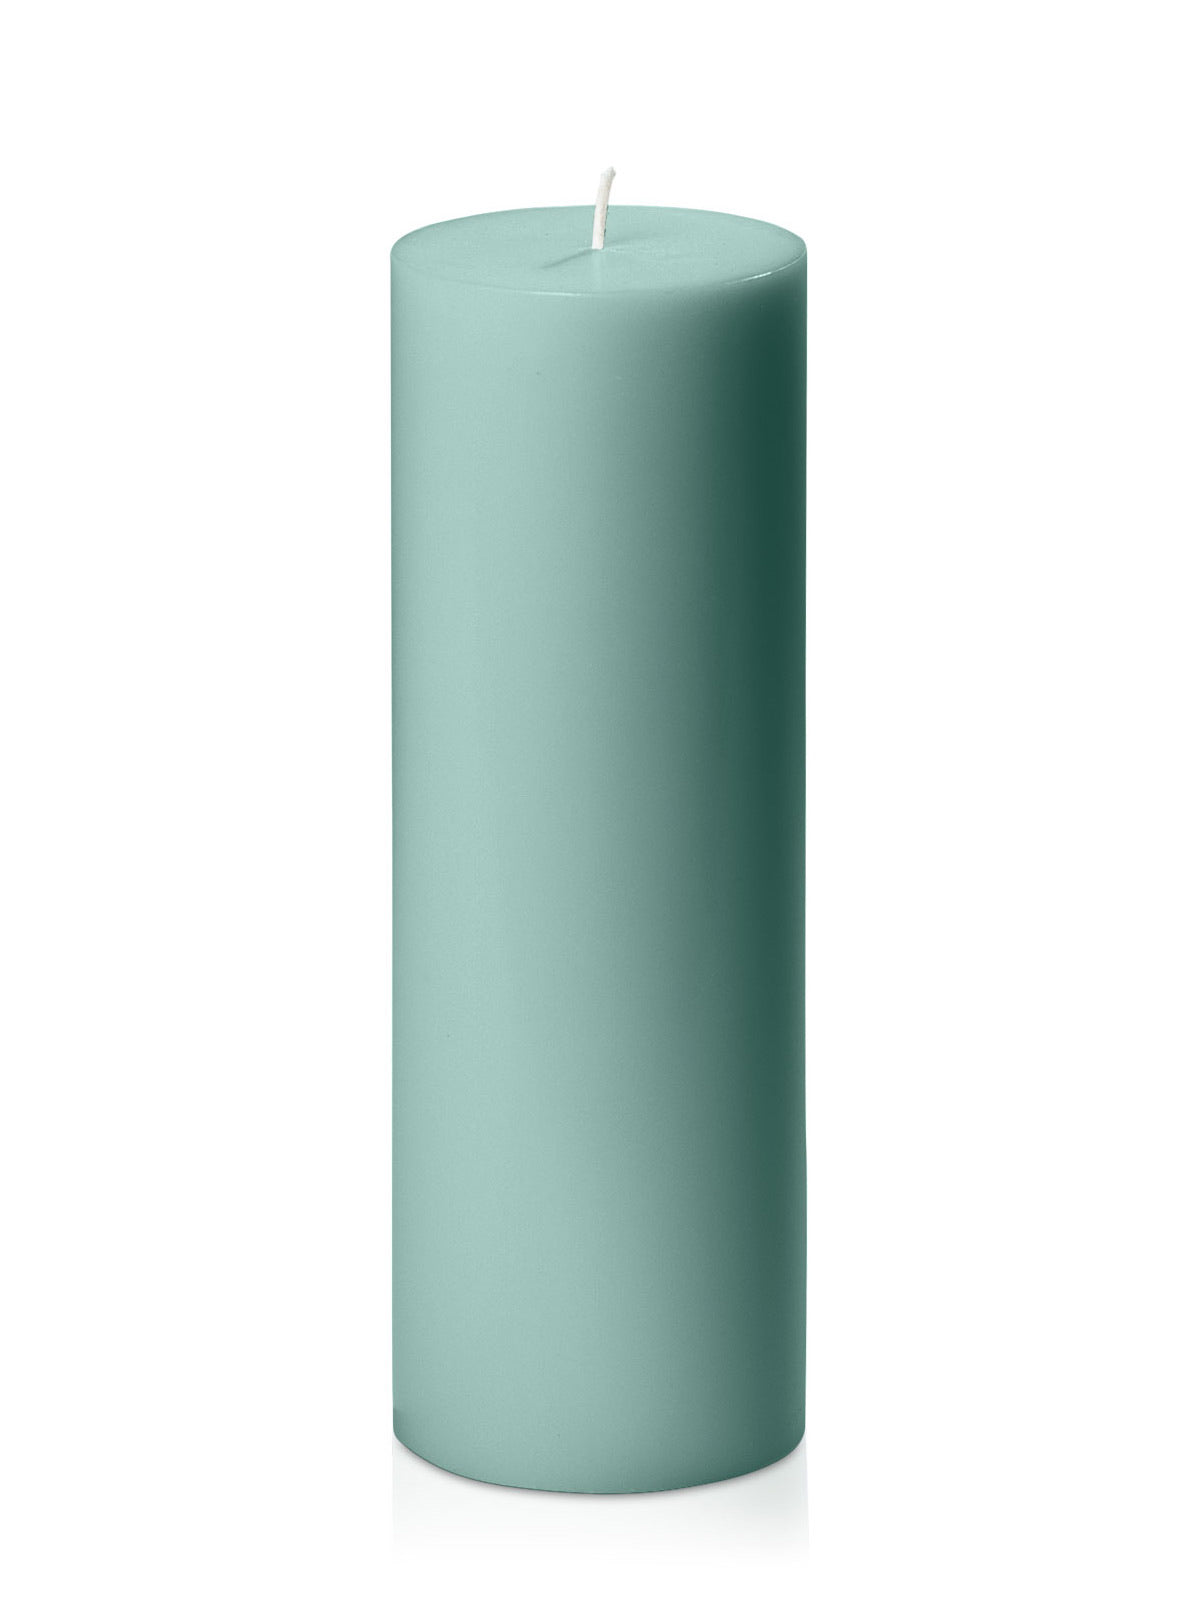 Eco Pillar 7cm x 20cm - Sage Green